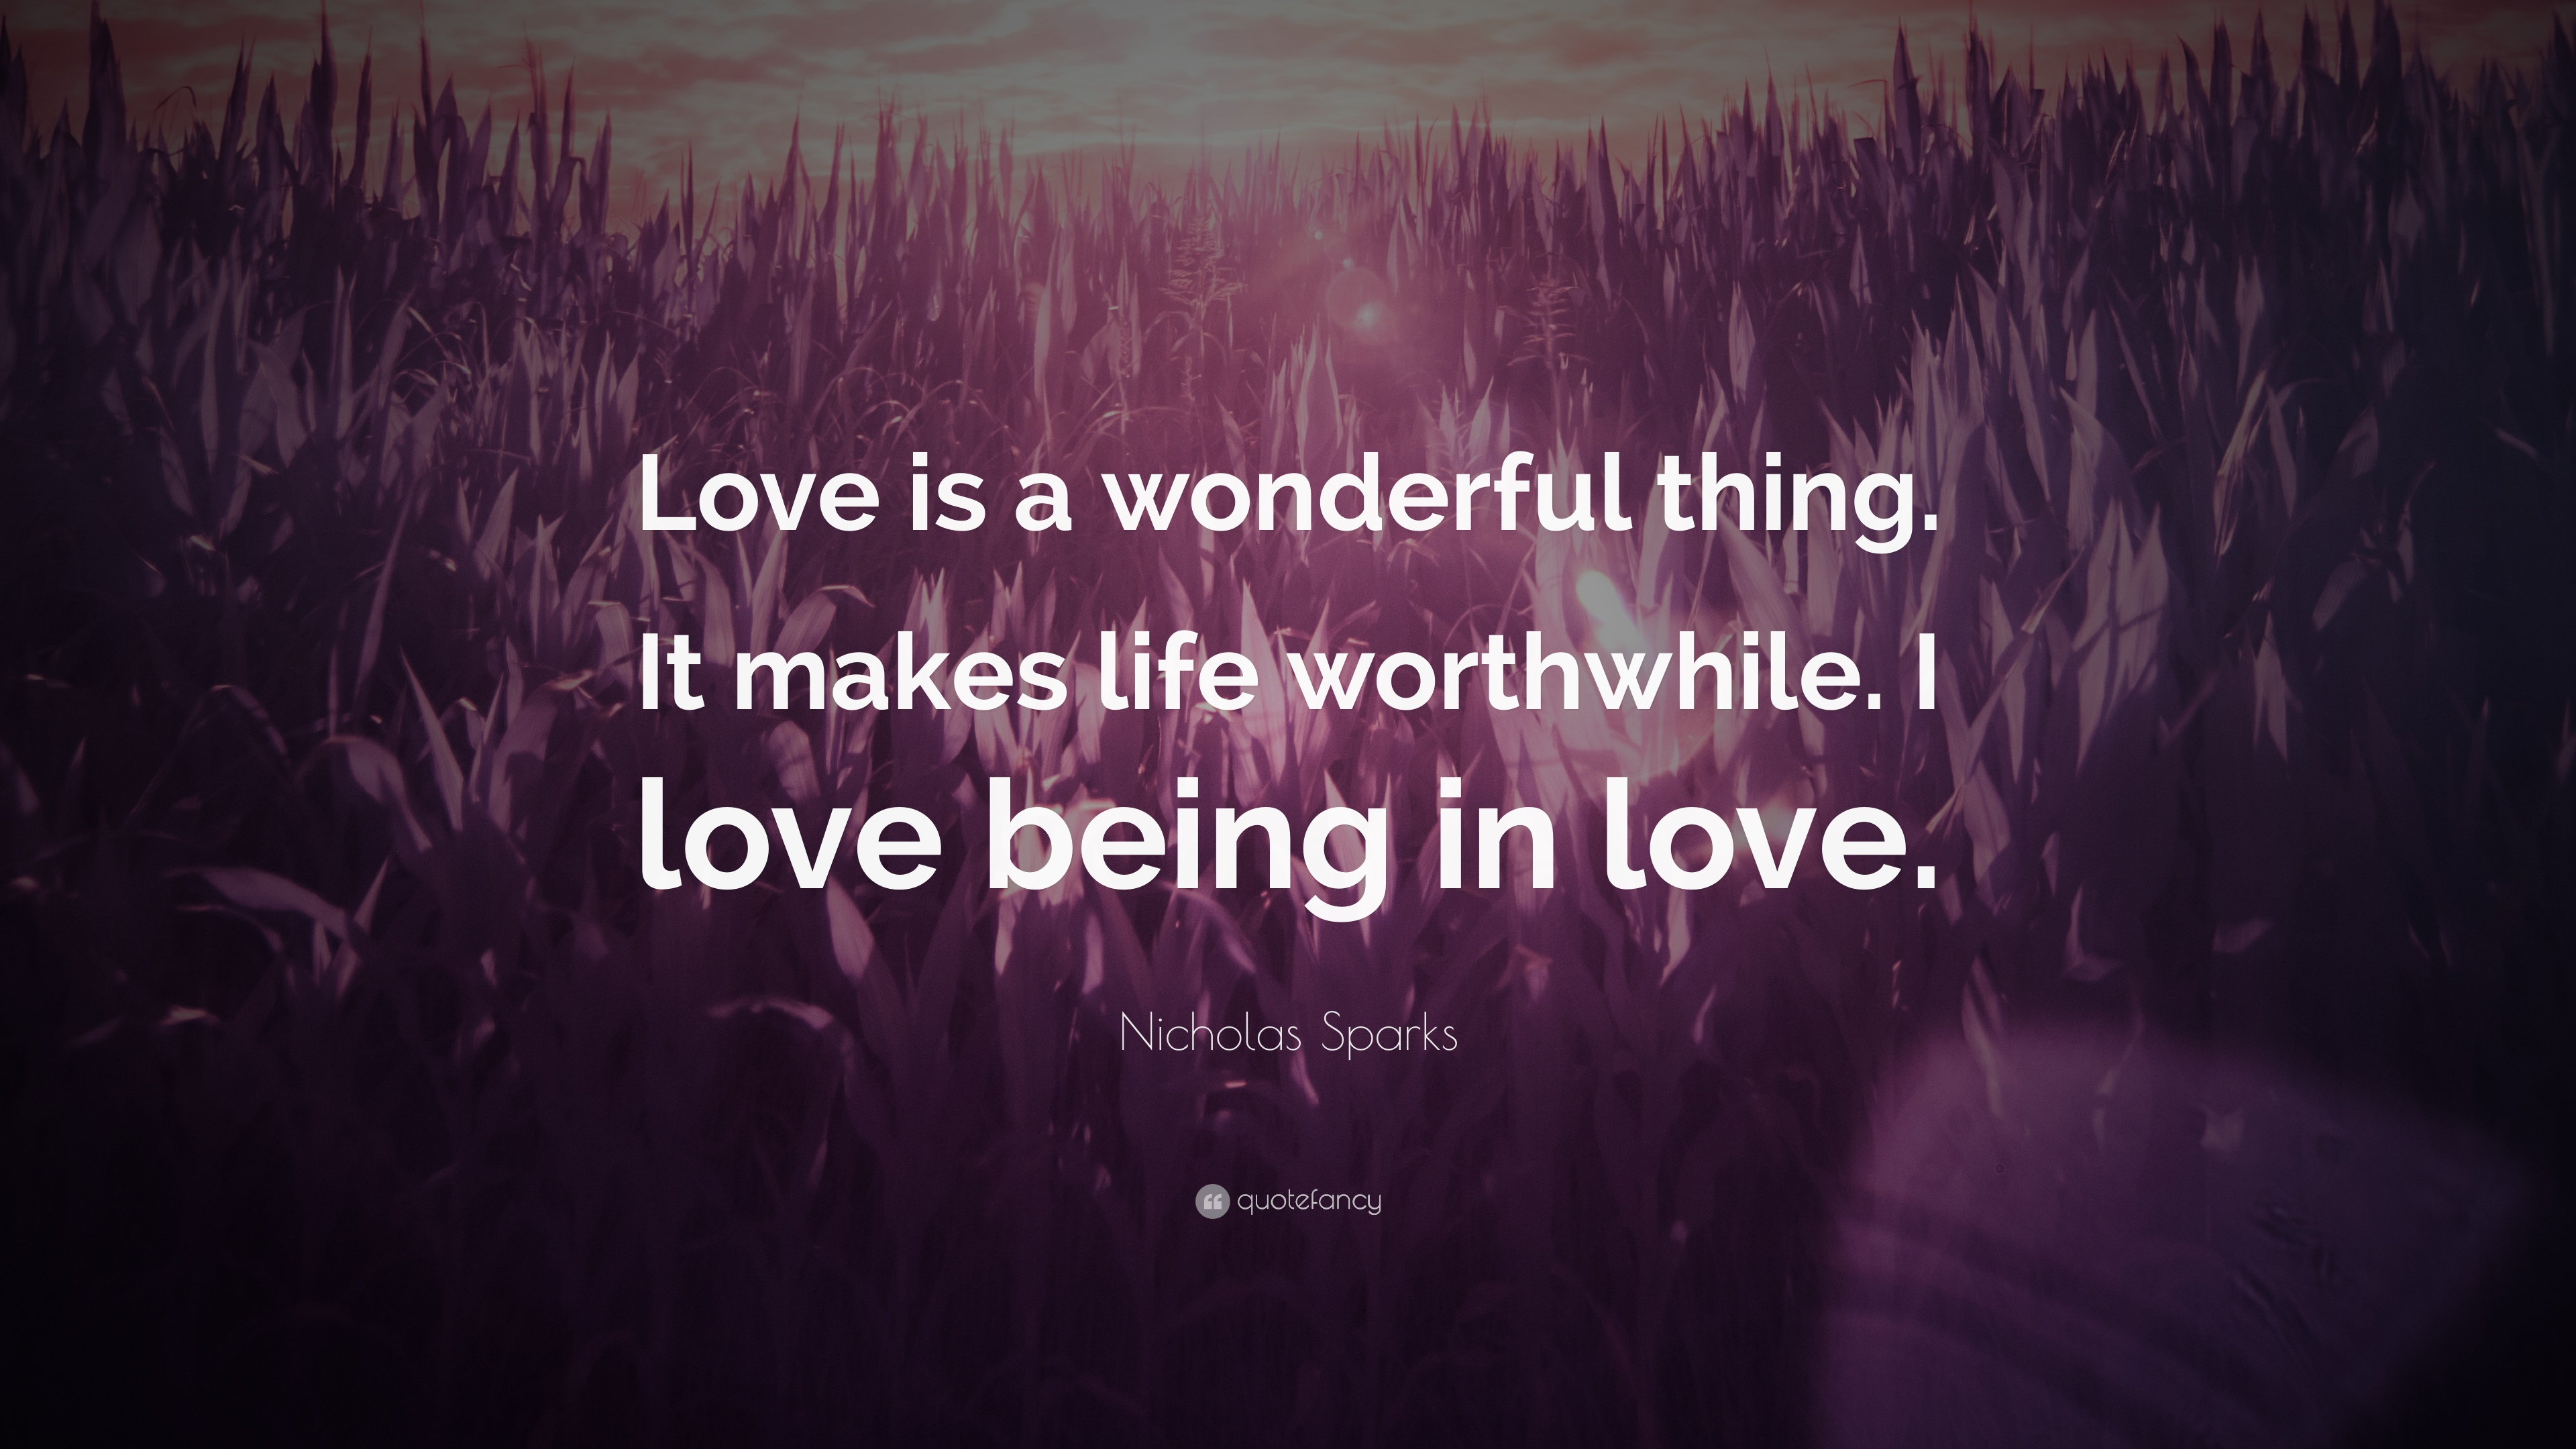 Love is a wonderful thing